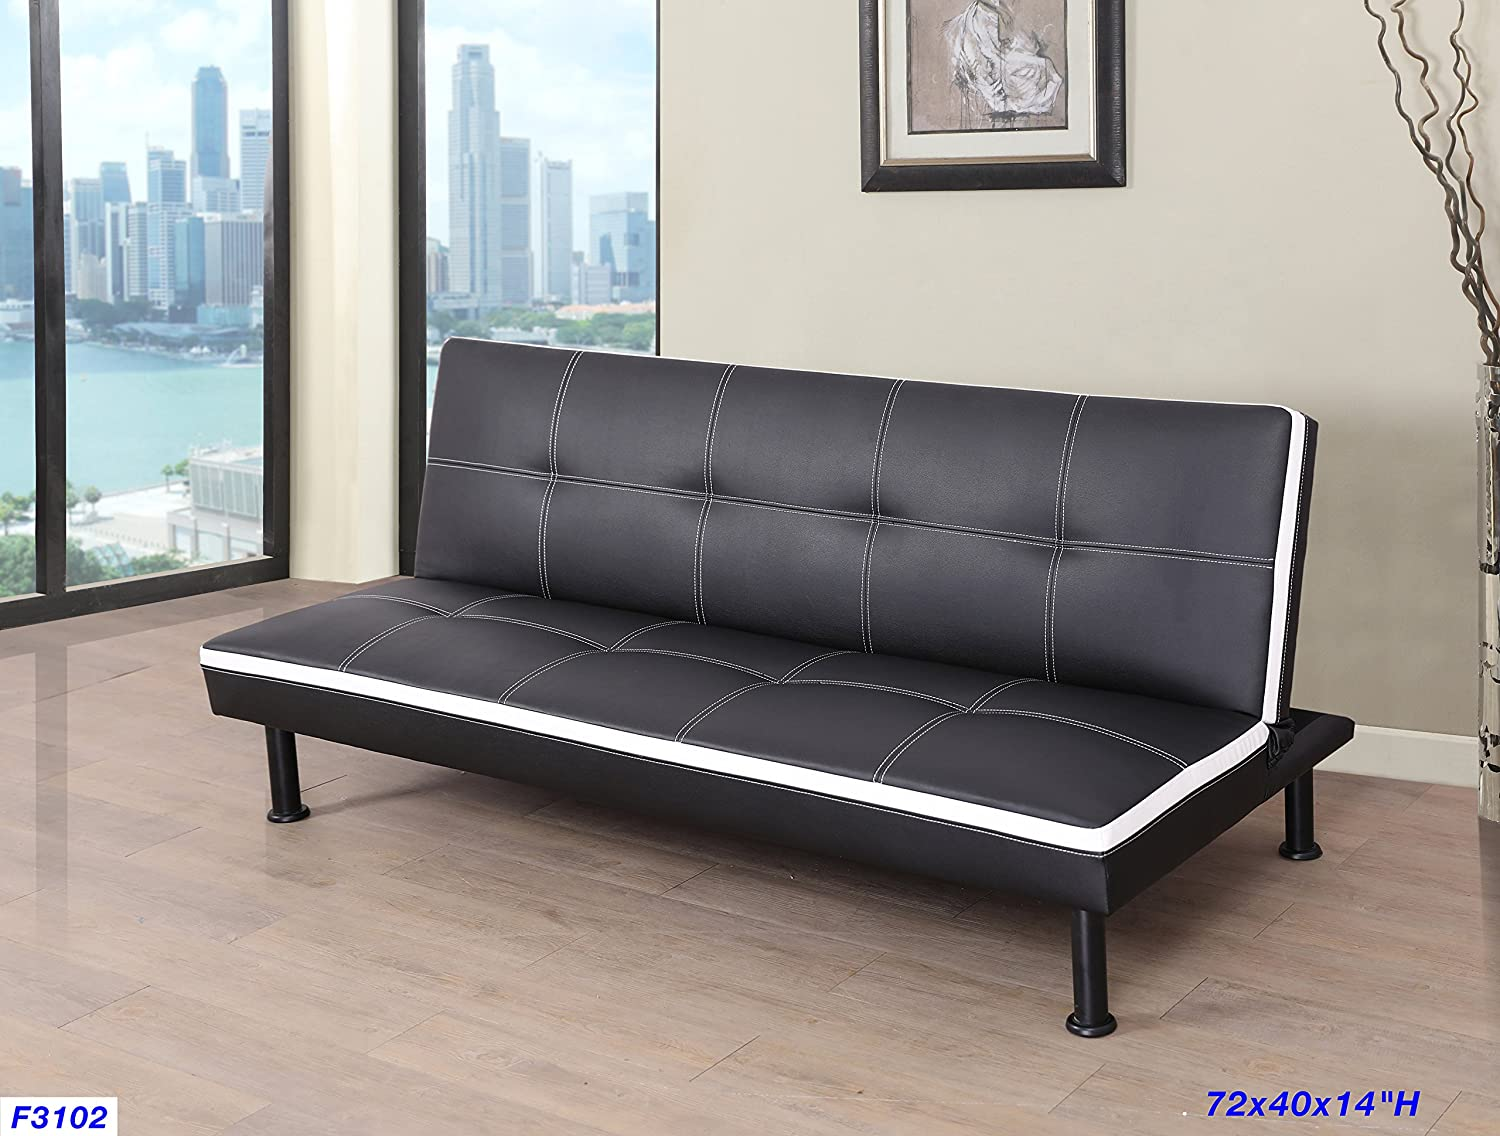 Beverly Furniture F3102 Futon Convertible Sofa, Black/White Beverly Fine Furniture